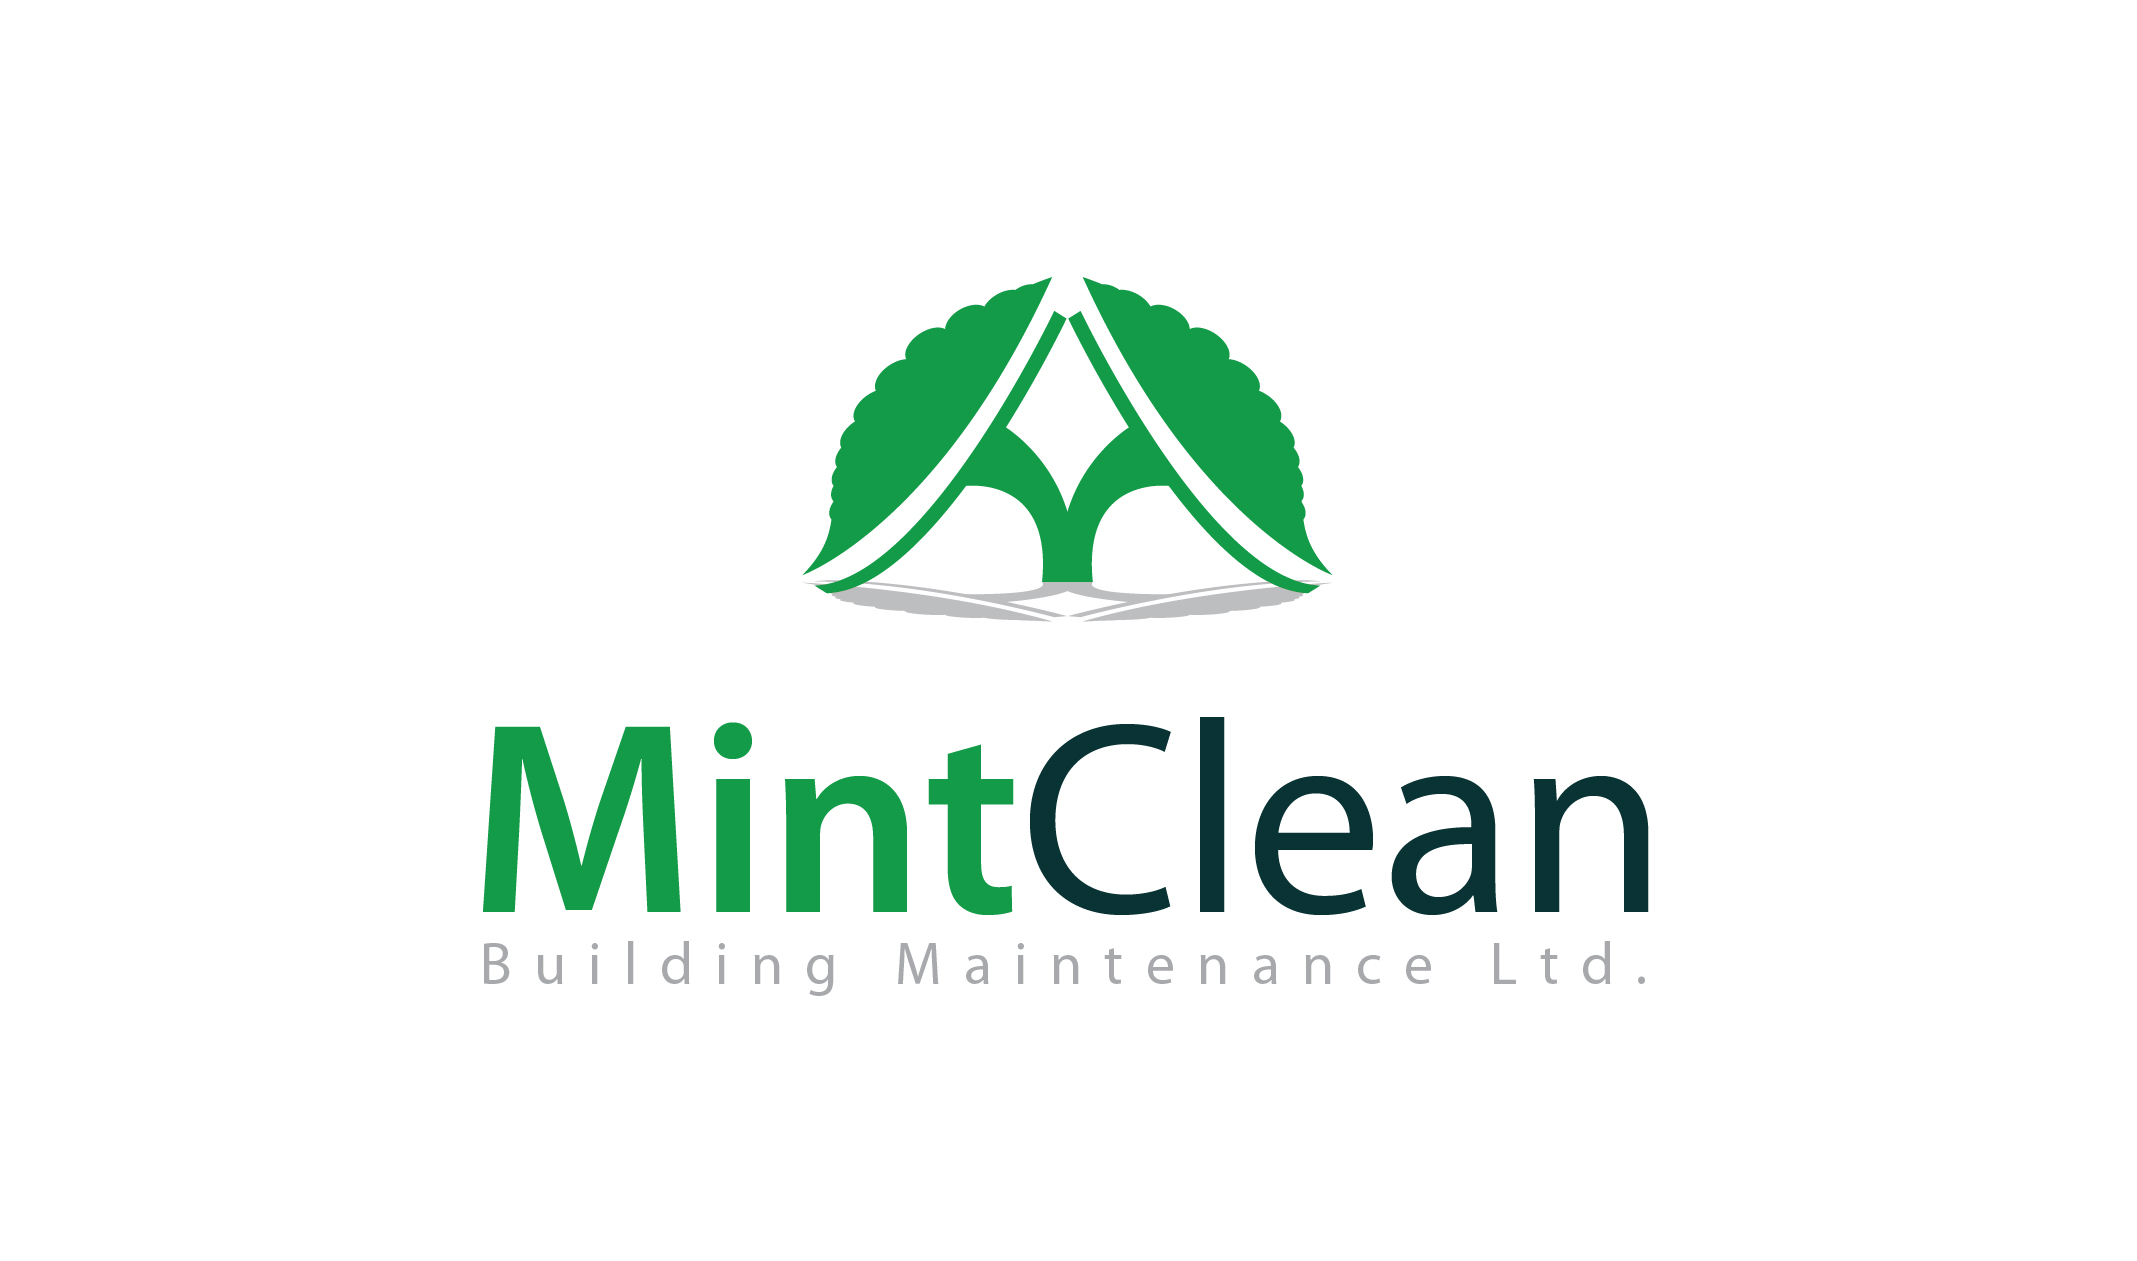 Logo Design by Francis Jun Bayron - Entry No. 57 in the Logo Design Contest MintClean Building Maintenance Ltd. Logo Design.